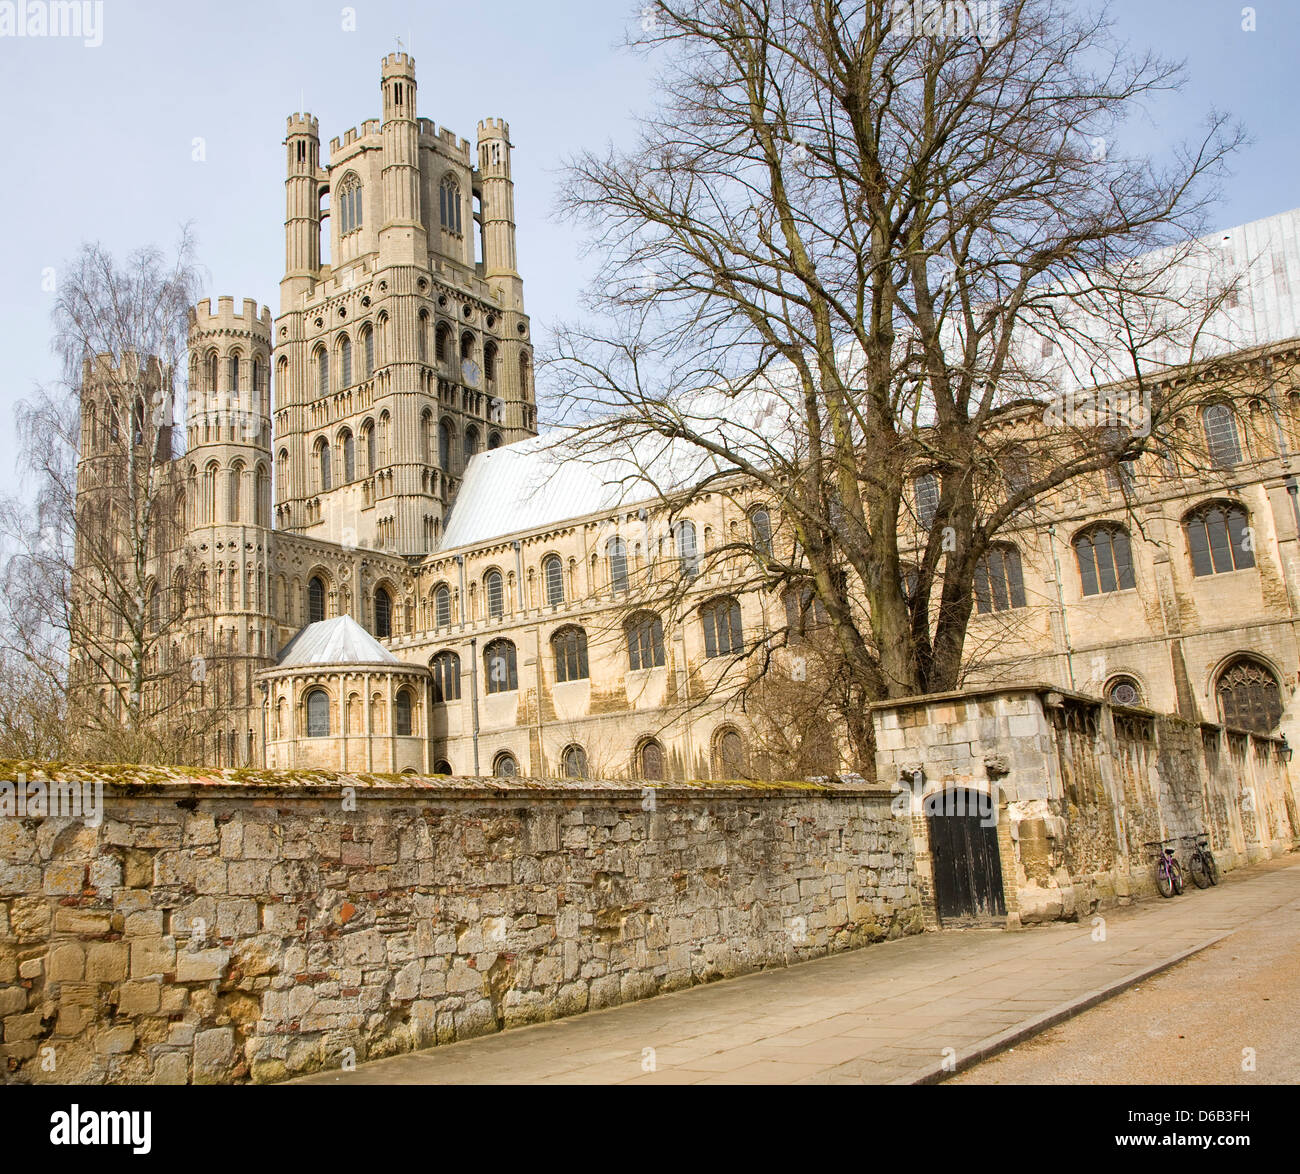 Ely cathedral, Cambridgeshire, England - Stock Image